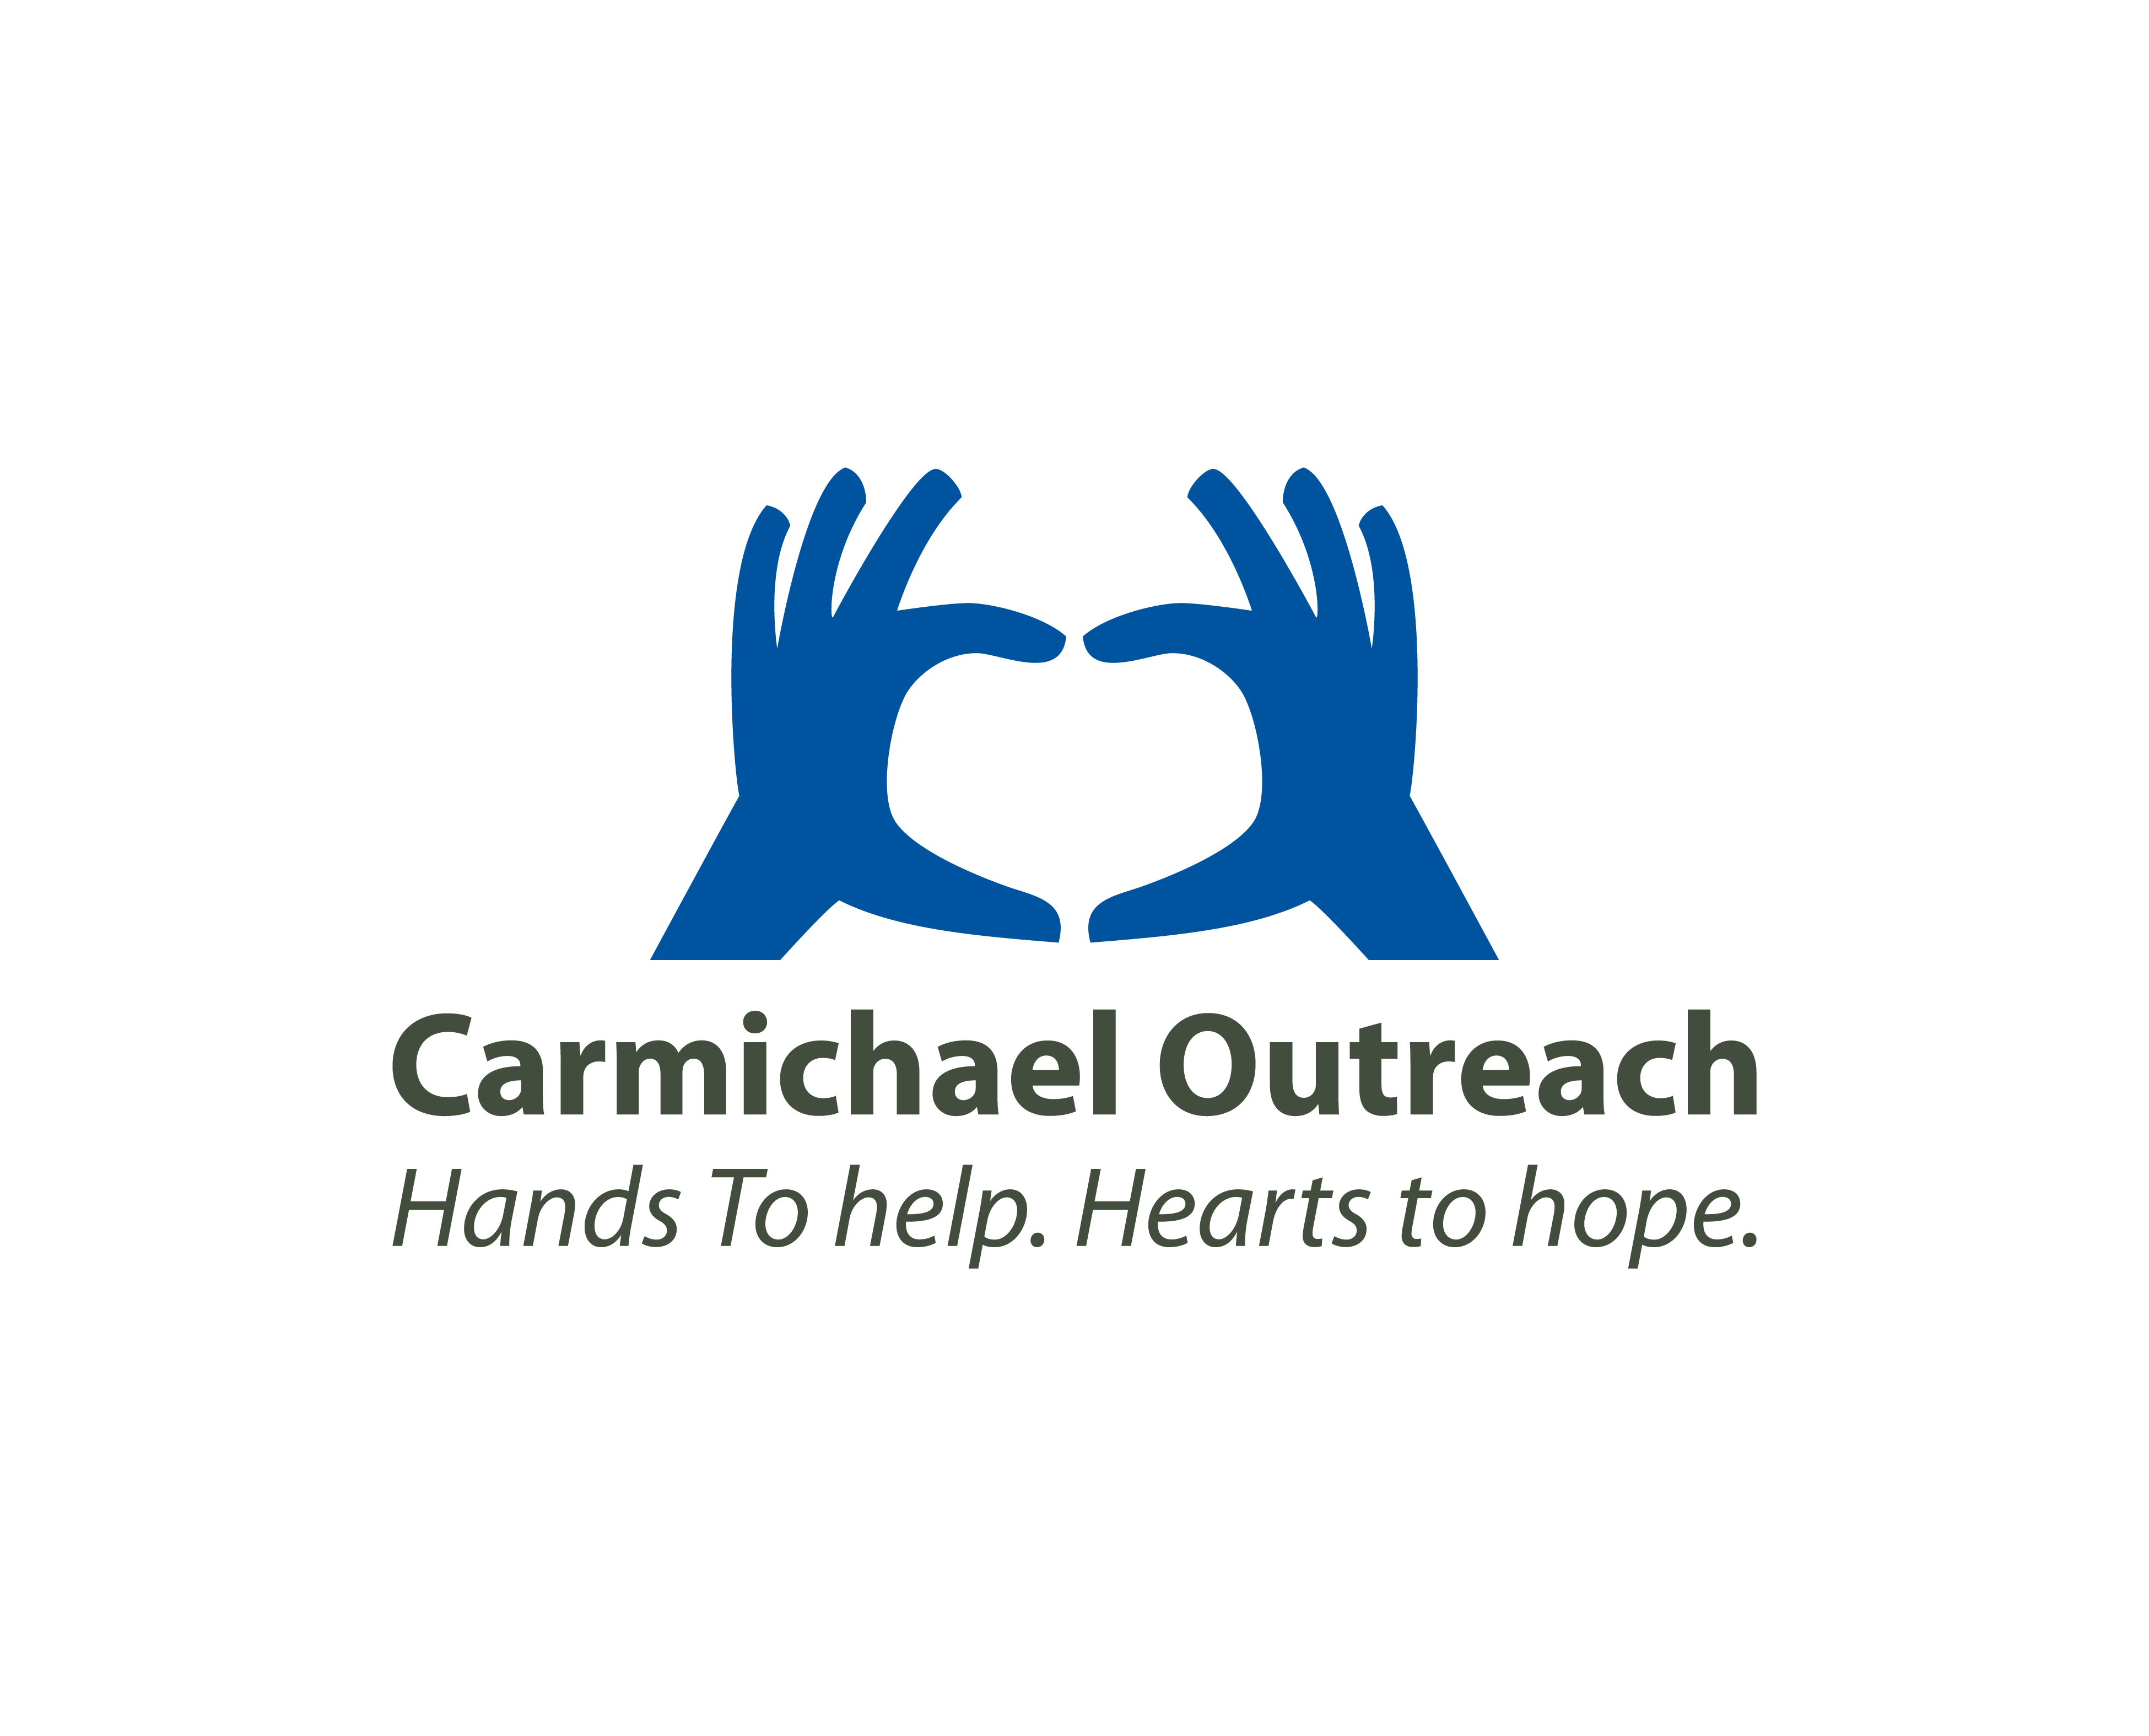 George Palmer – Notice of Passing Carmichael Outreach